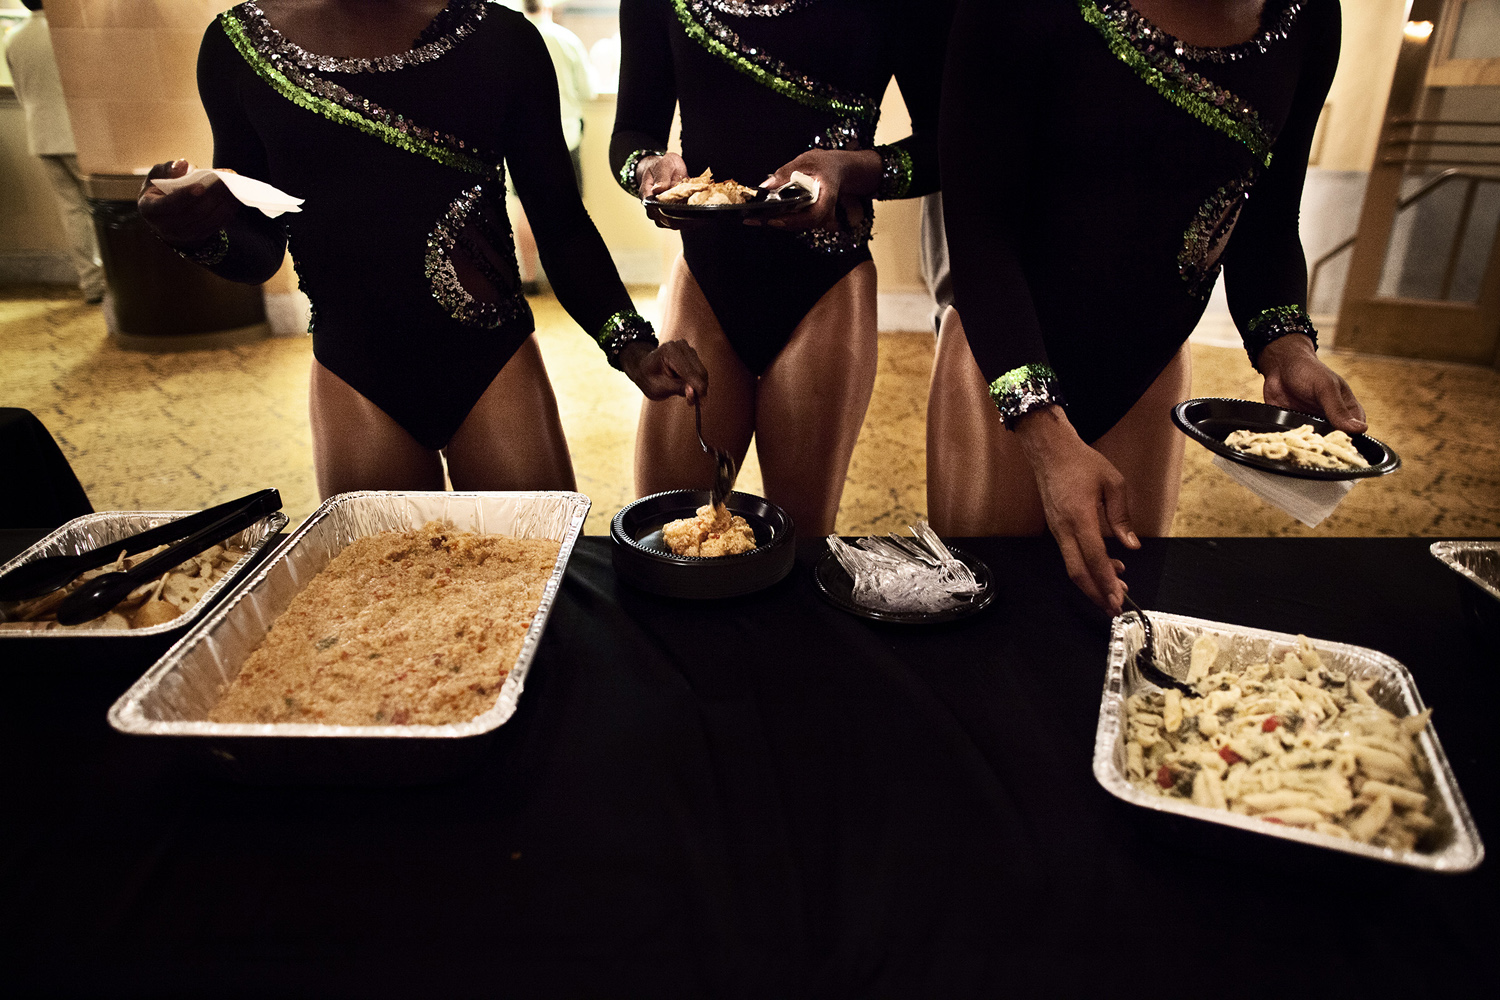 The Prancing Elites indulge in traditional Southern fare like shrimp and grits after a performance at the Saenger Theater in Mobile, Ala.